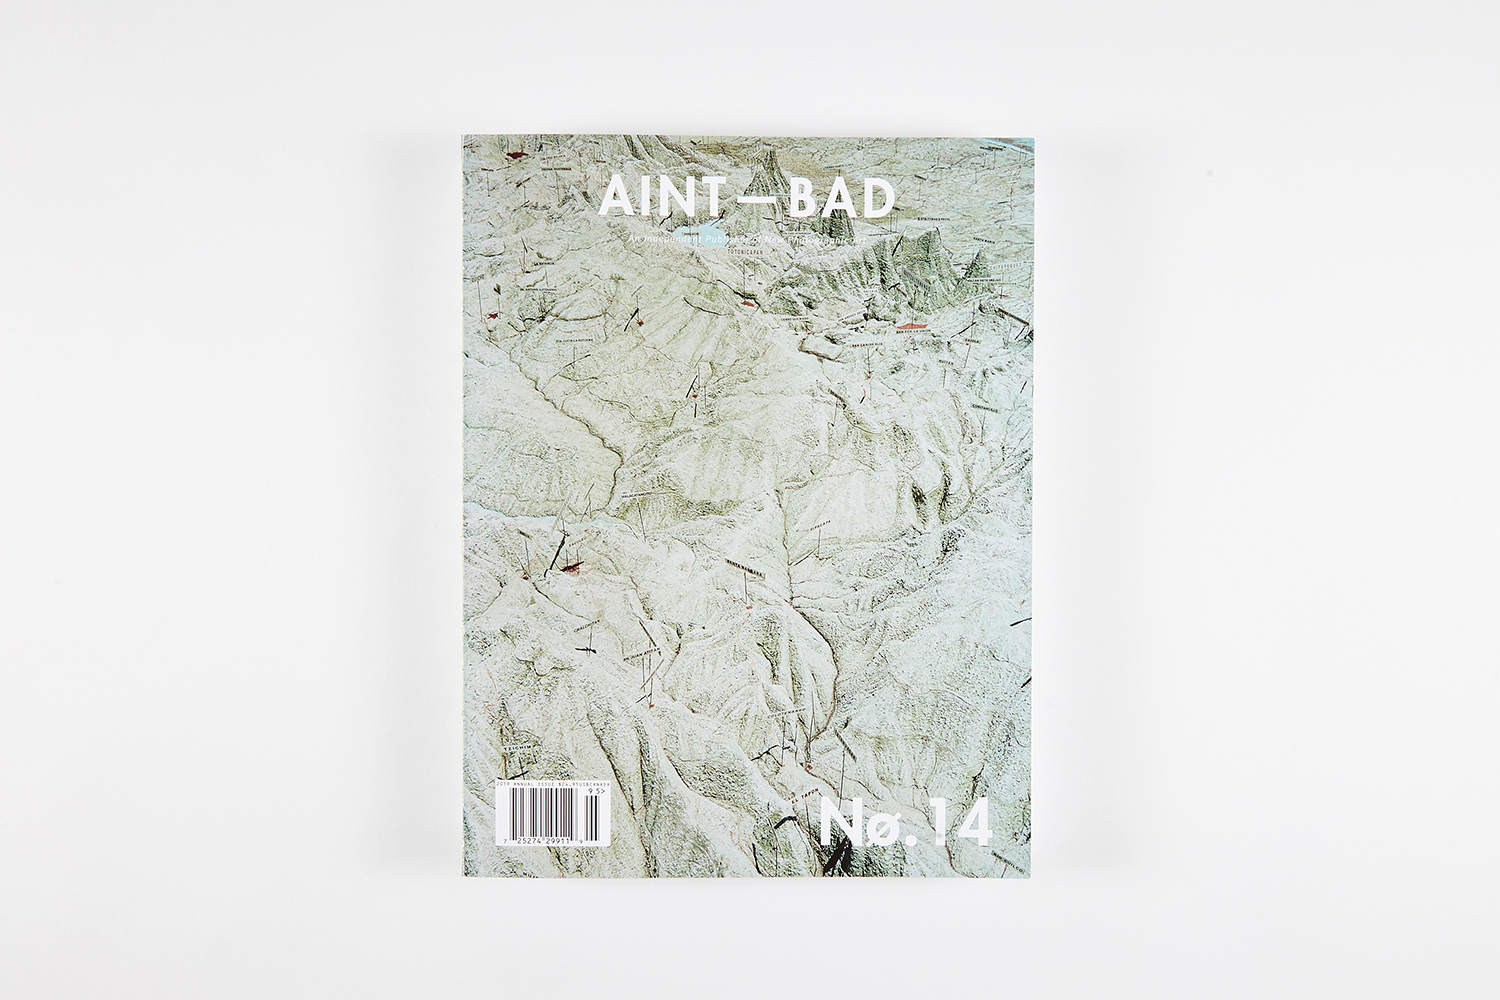 aint_bad_no.14_001.jpg